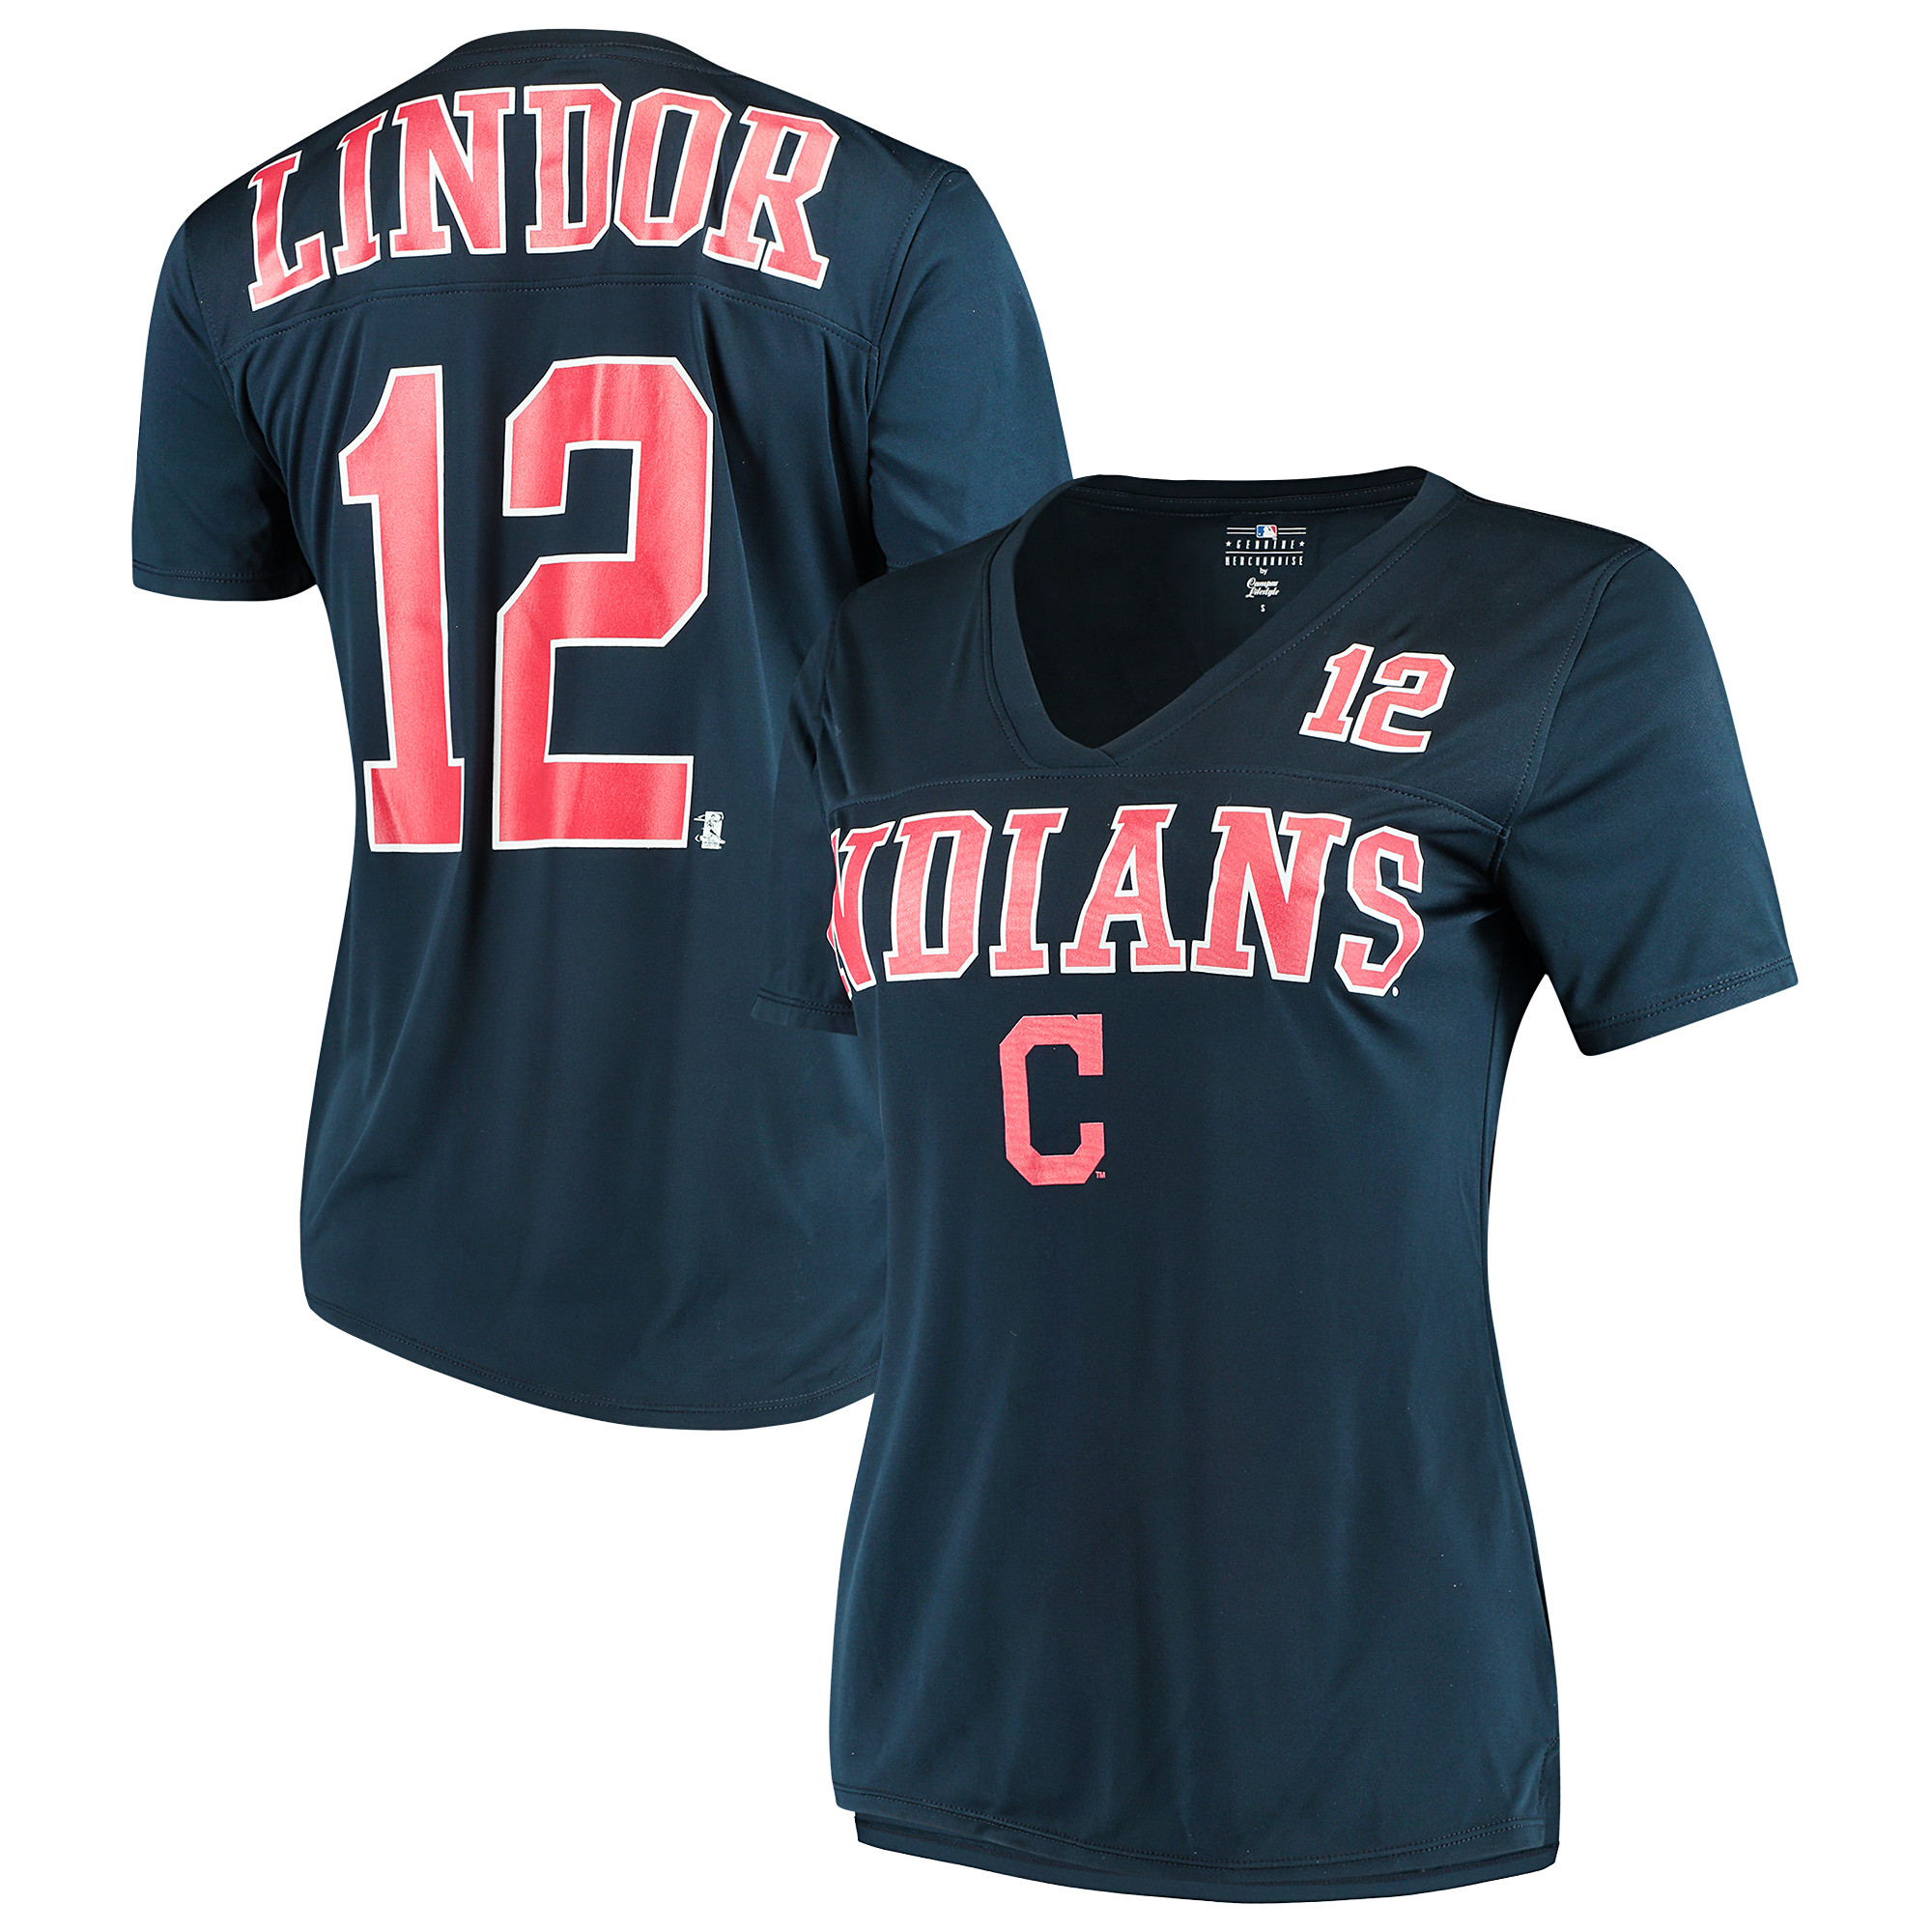 Women's New Era Francisco Lindor Navy Cleveland Indians Name & Number T-Shirt